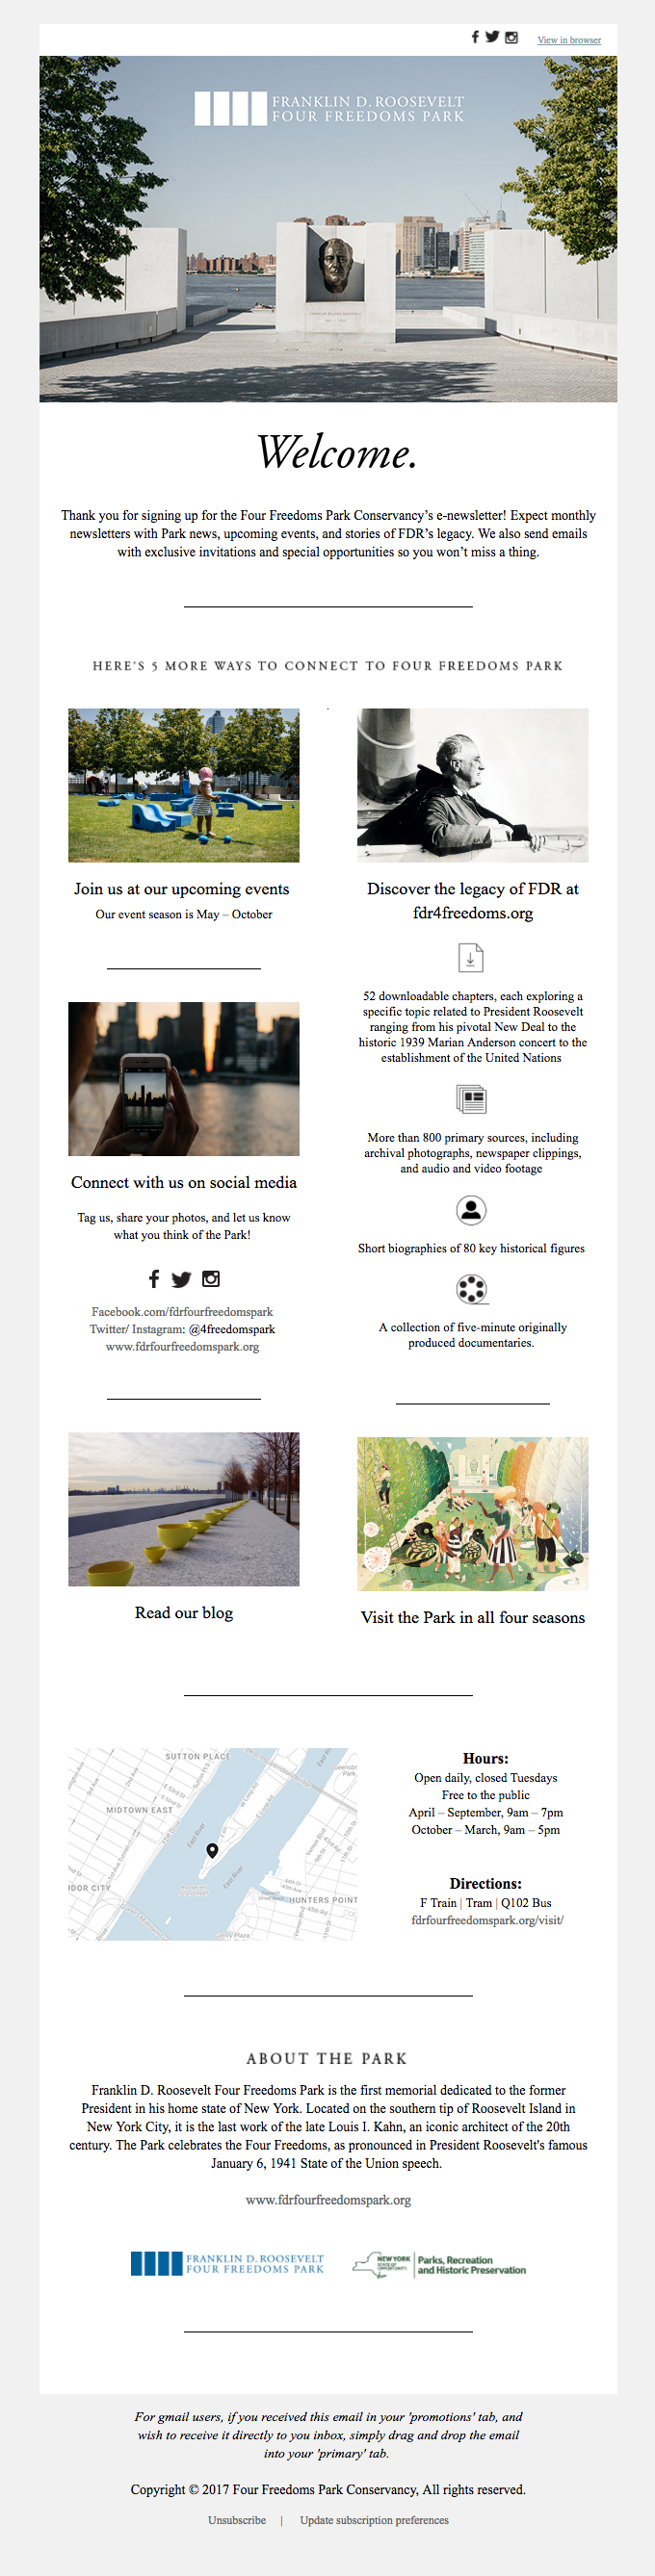 The Franklin D. Roosevelt Four Freedoms Park Welcome Email